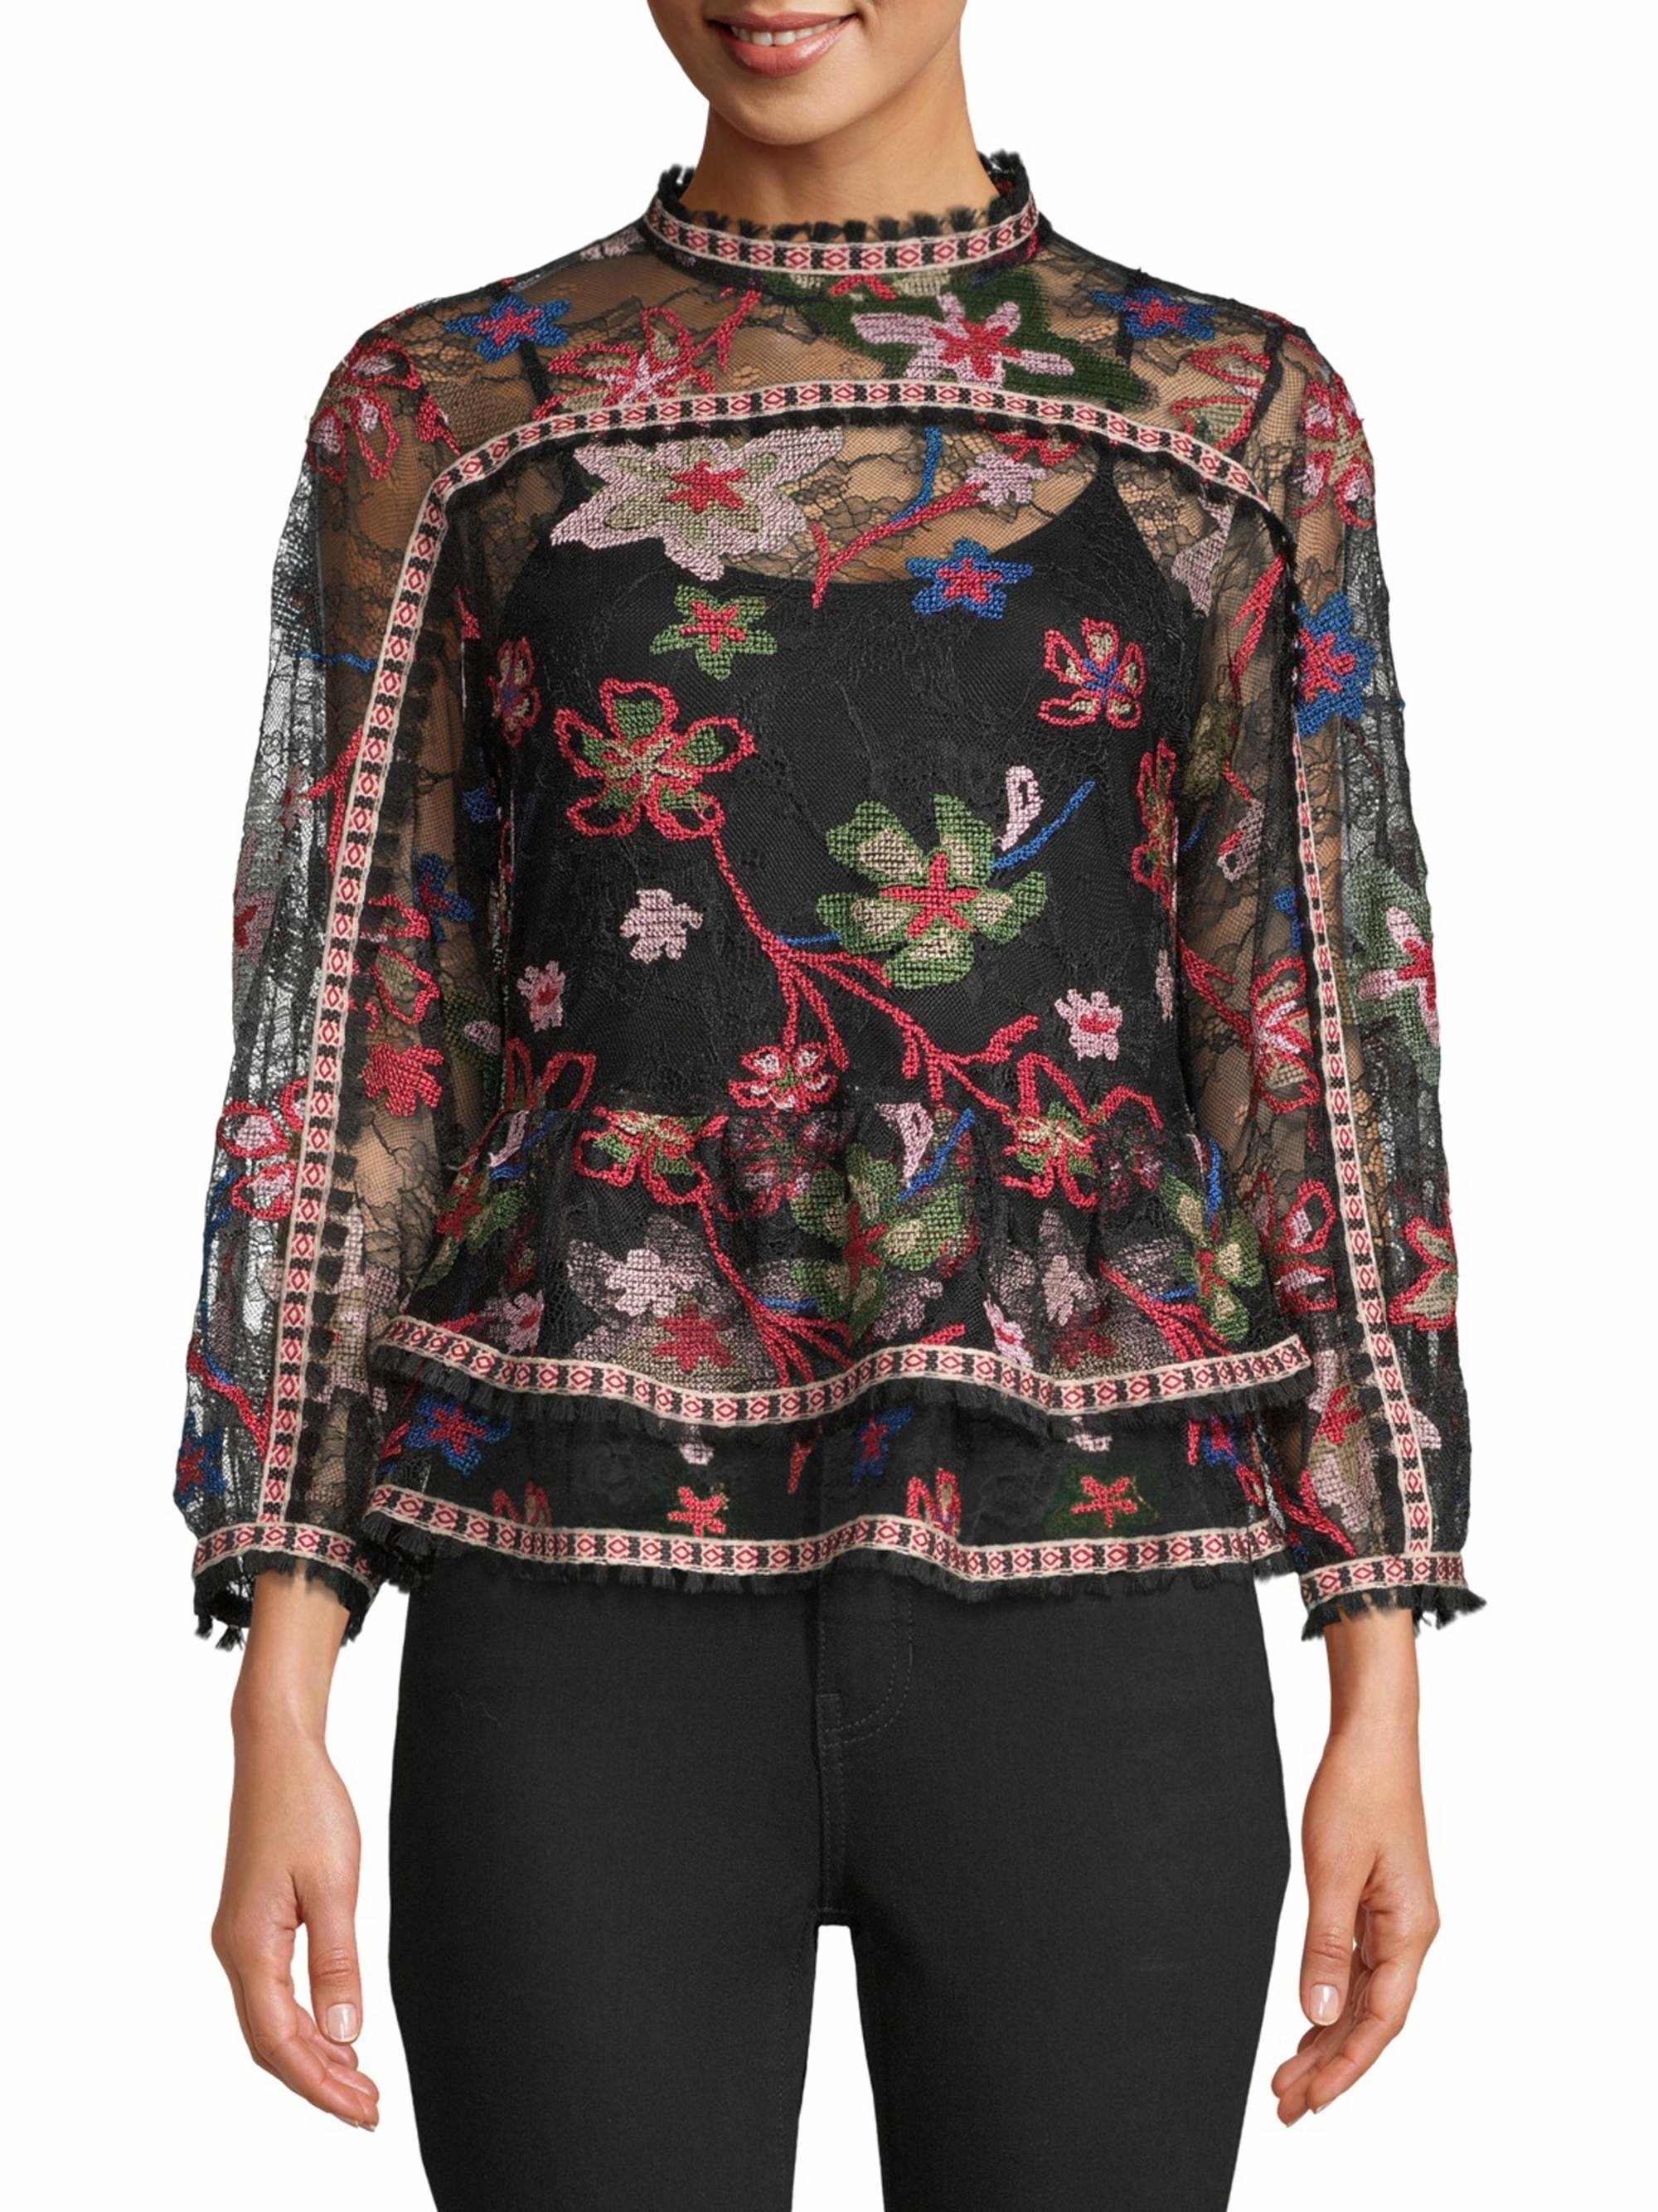 The embroidered semi sheer black and red top